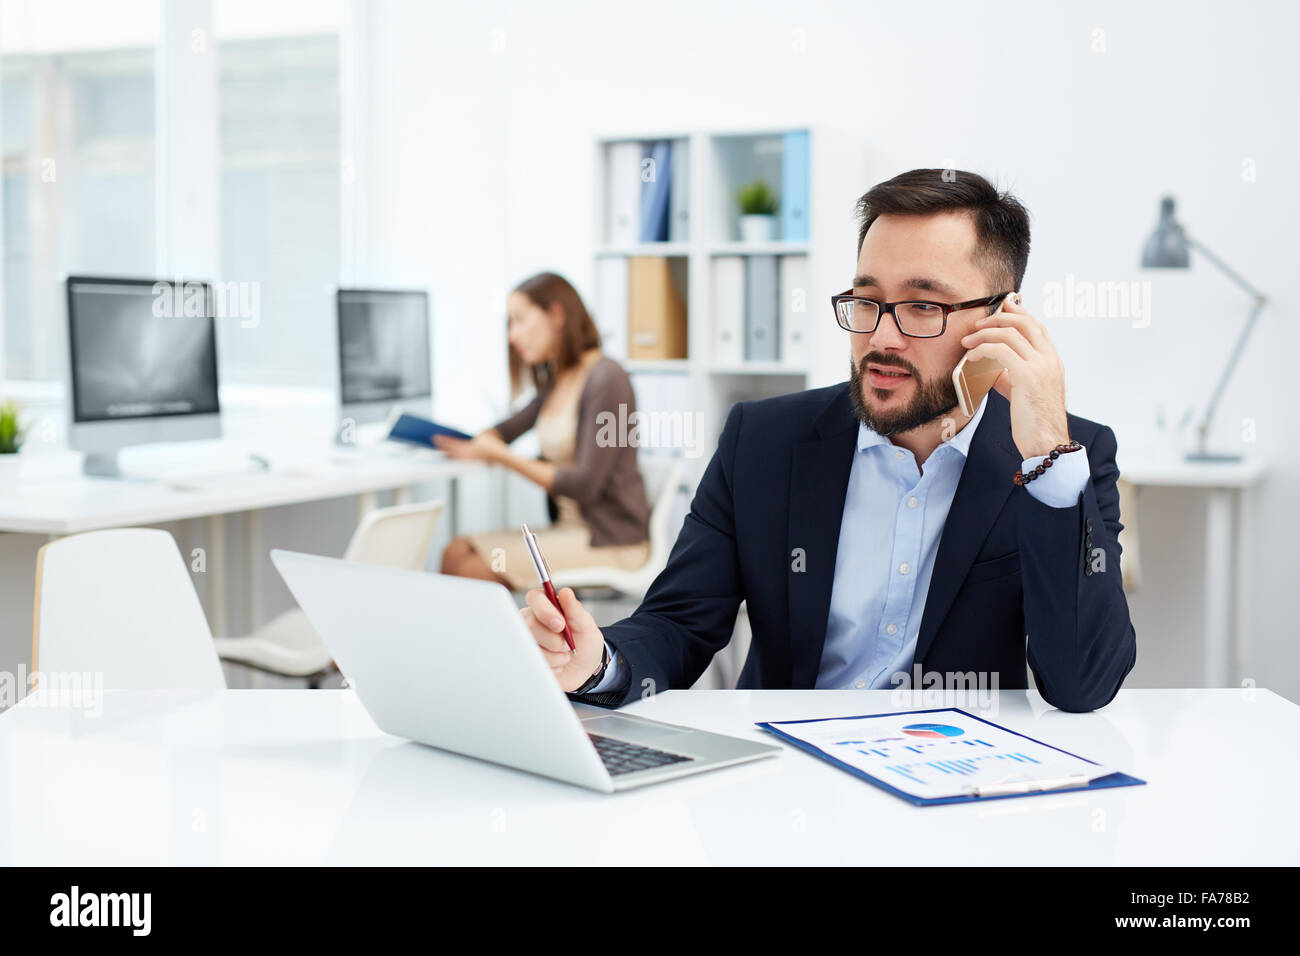 Confident businessman calling and looking at laptop display - Stock Image